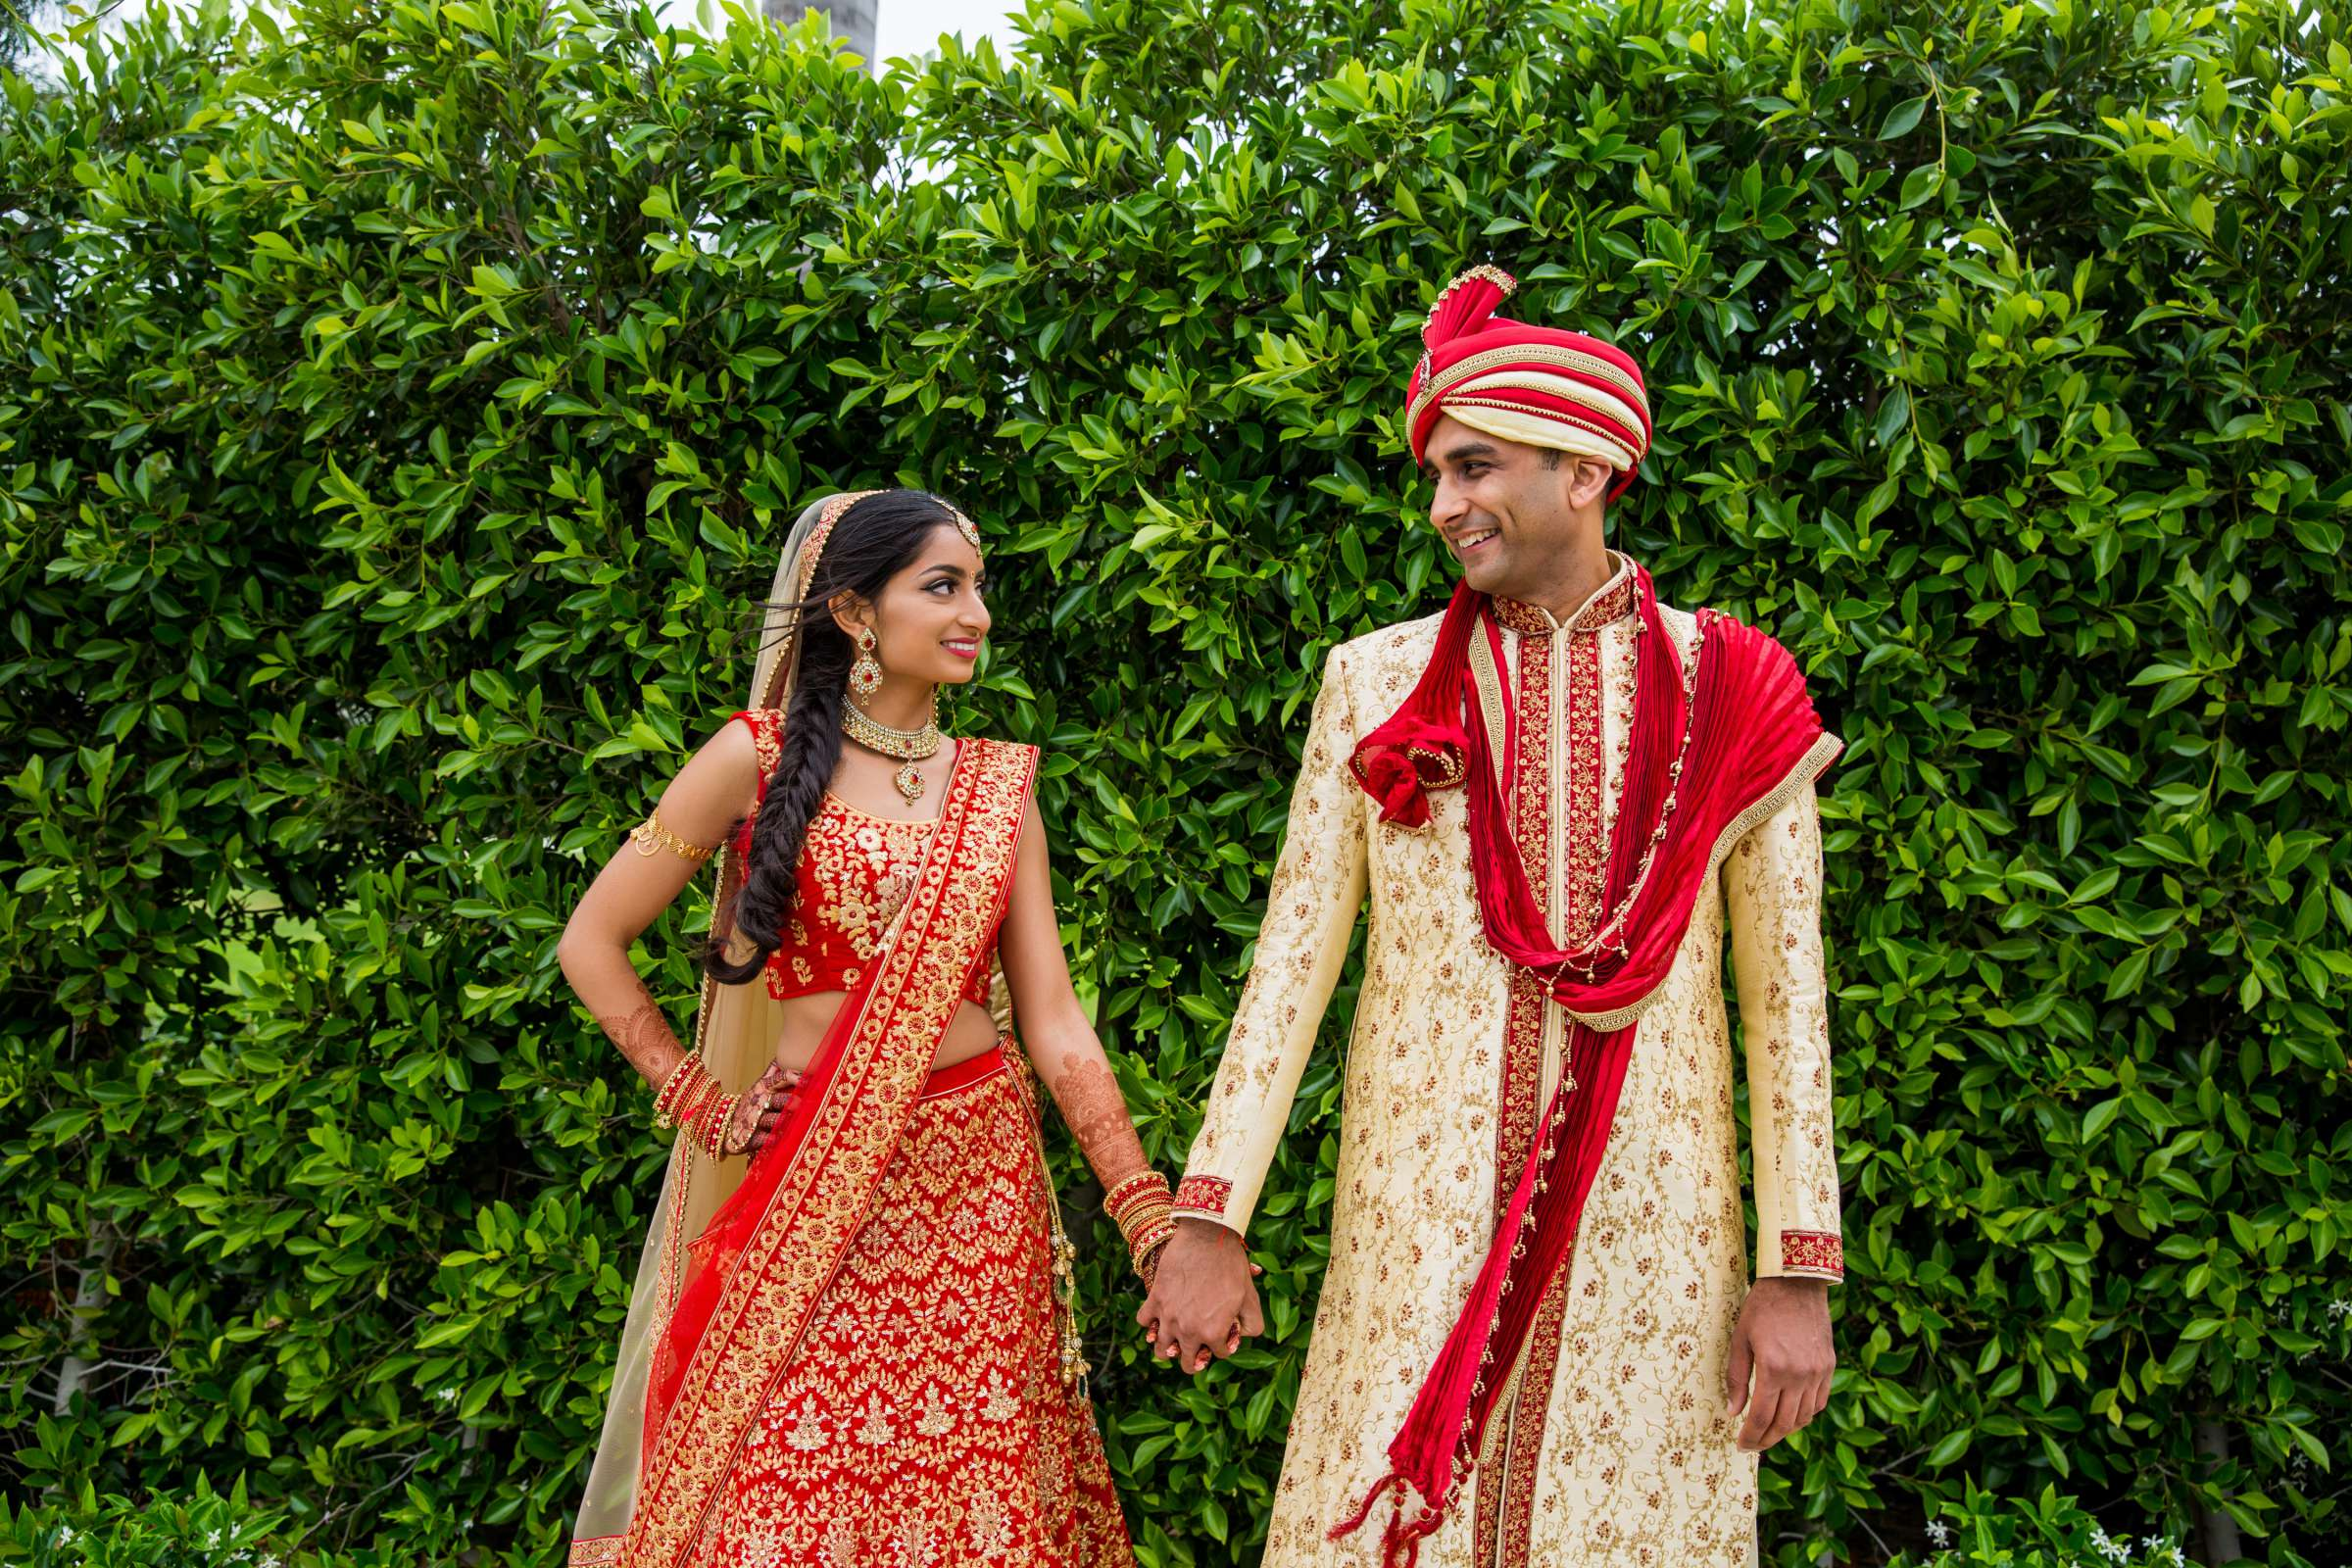 The Westin Carlsbad Resort and Spa Wedding coordinated by Shilpa Patel Events, Ami and Amit Wedding Photo #24 by True Photography